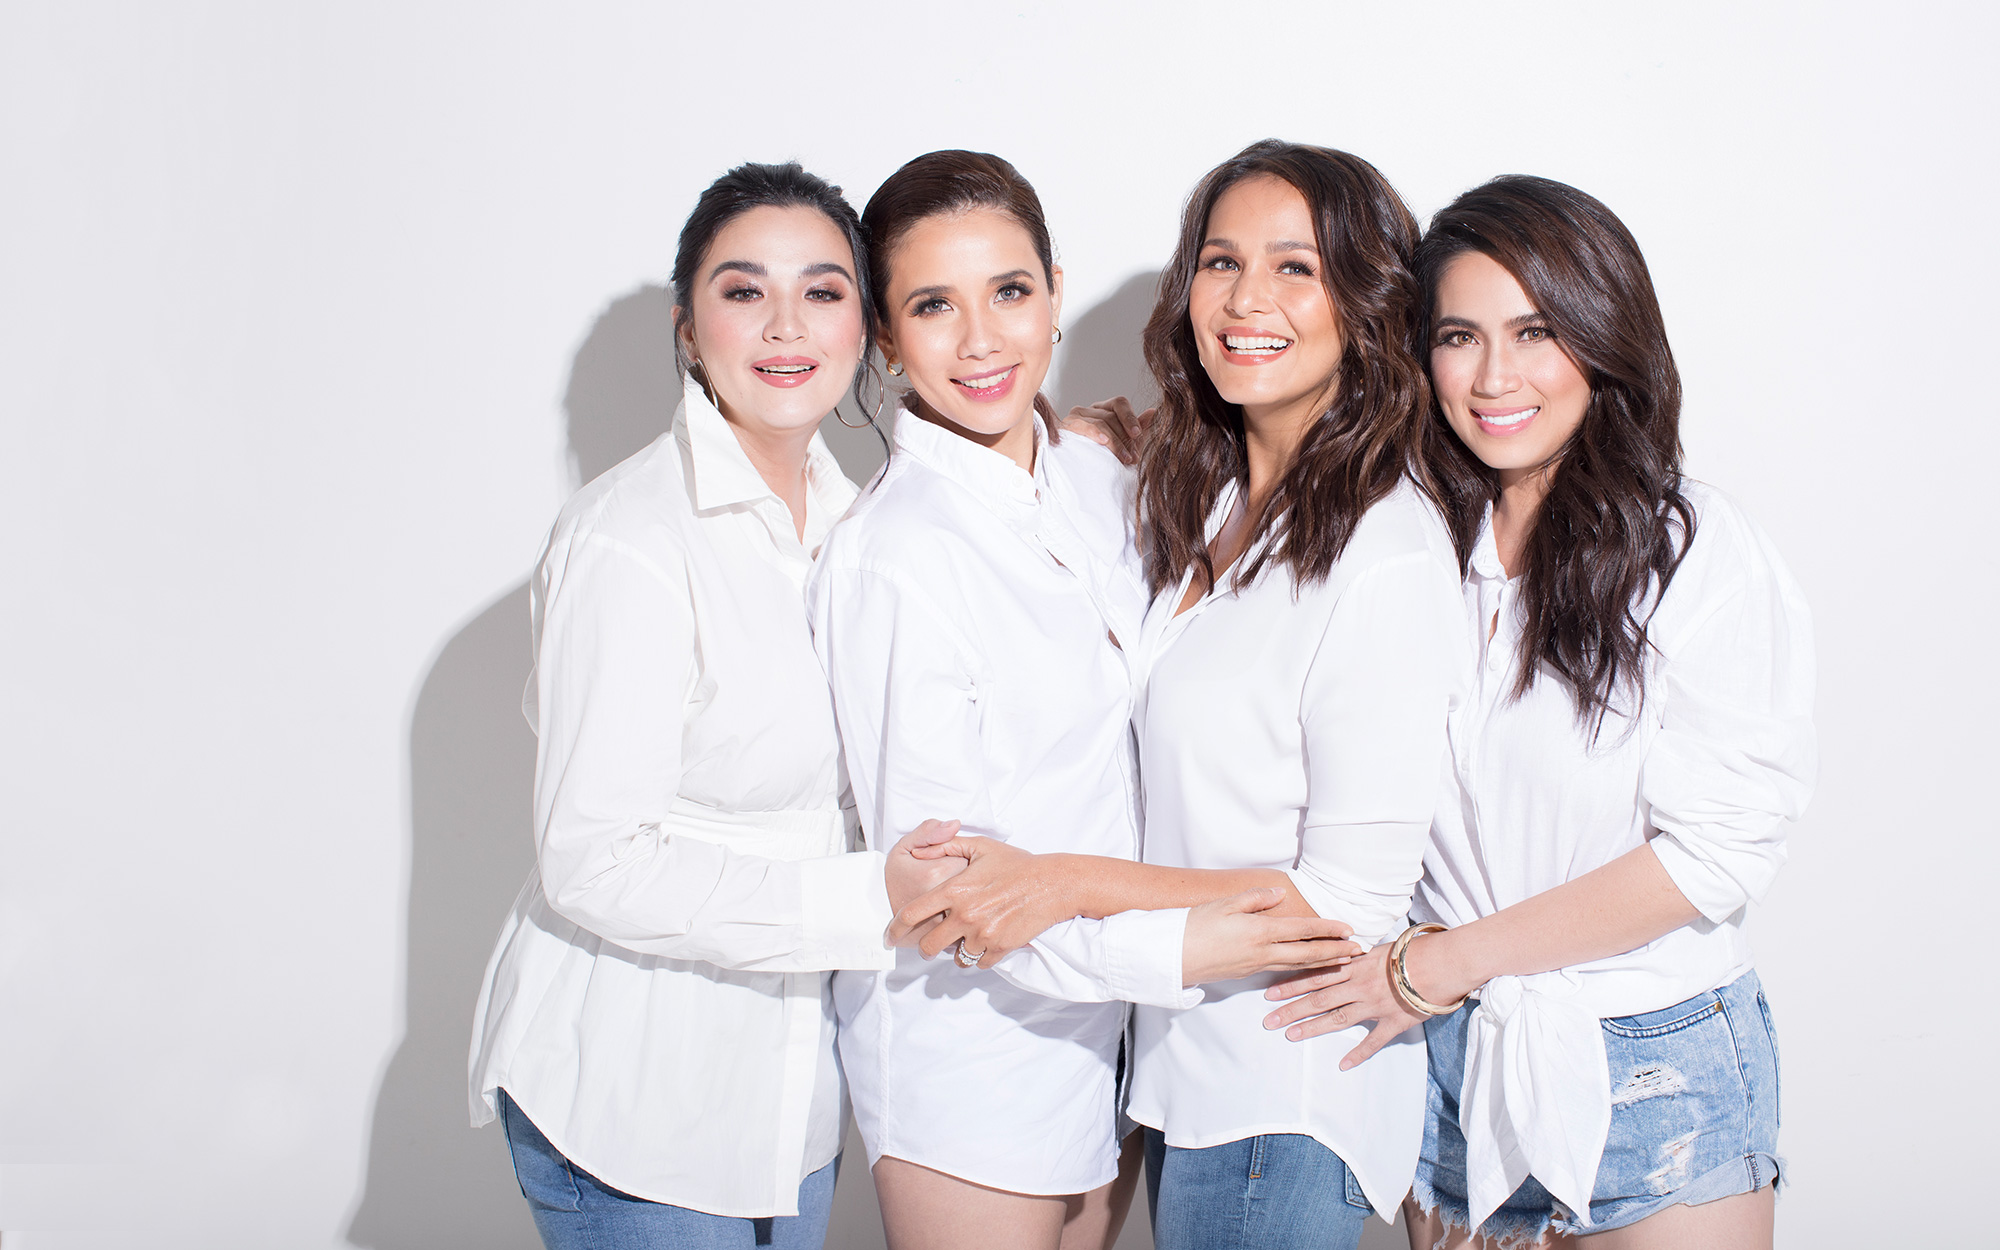 Encantadia 2005 Sang'gres: The friendship that defies the network war